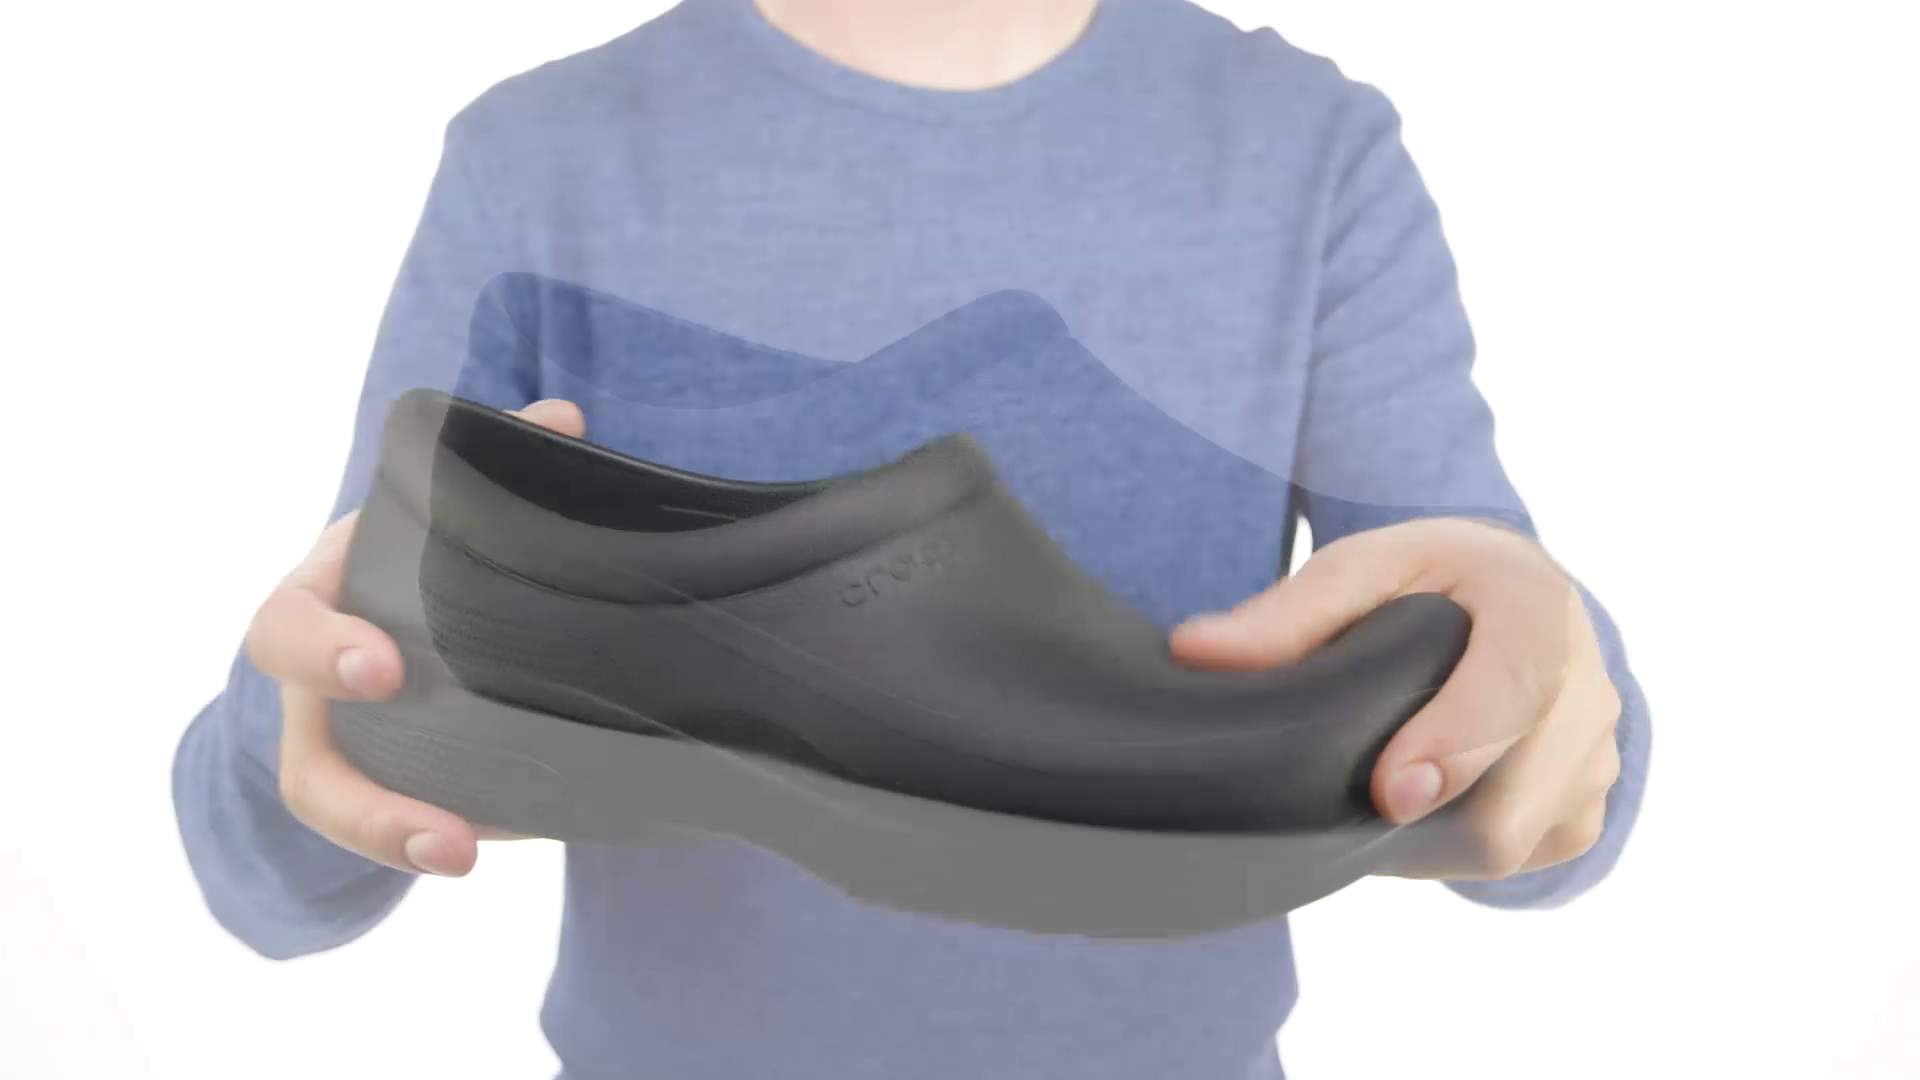 Crocs On-The-Clock Work Slip-On Outlet Recommend qB2J46Hq